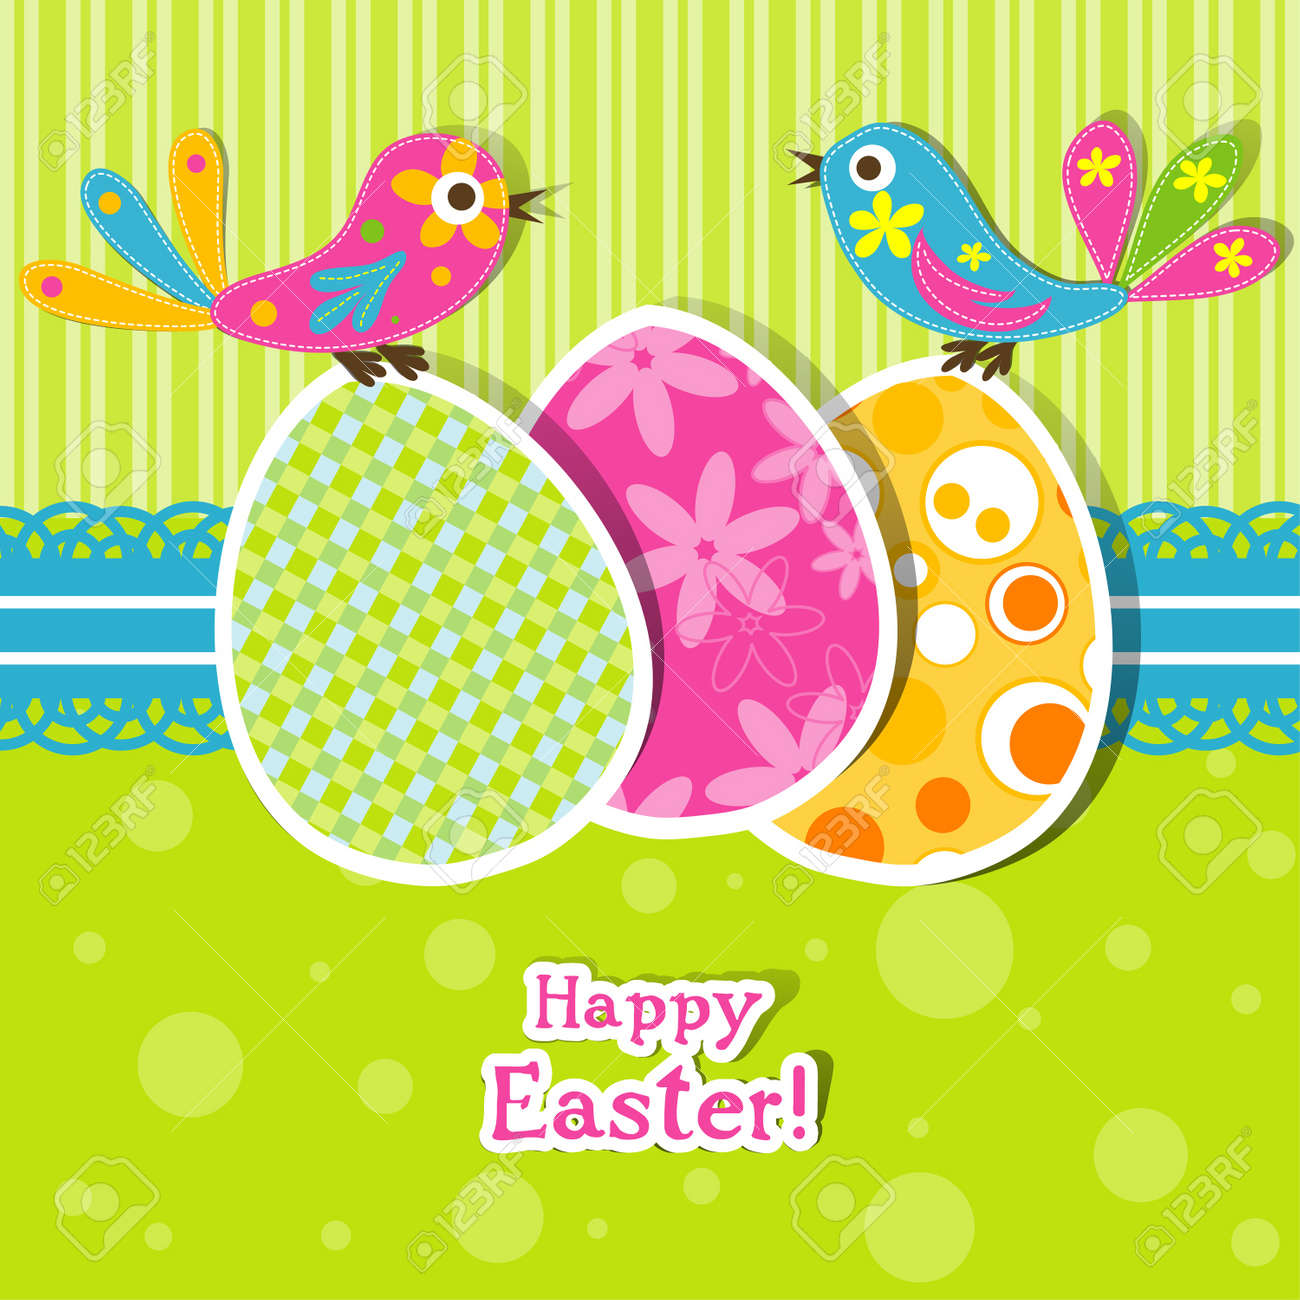 Template Easter Greeting Card Vector Illustration Royalty Free – Easter Greeting Card Template